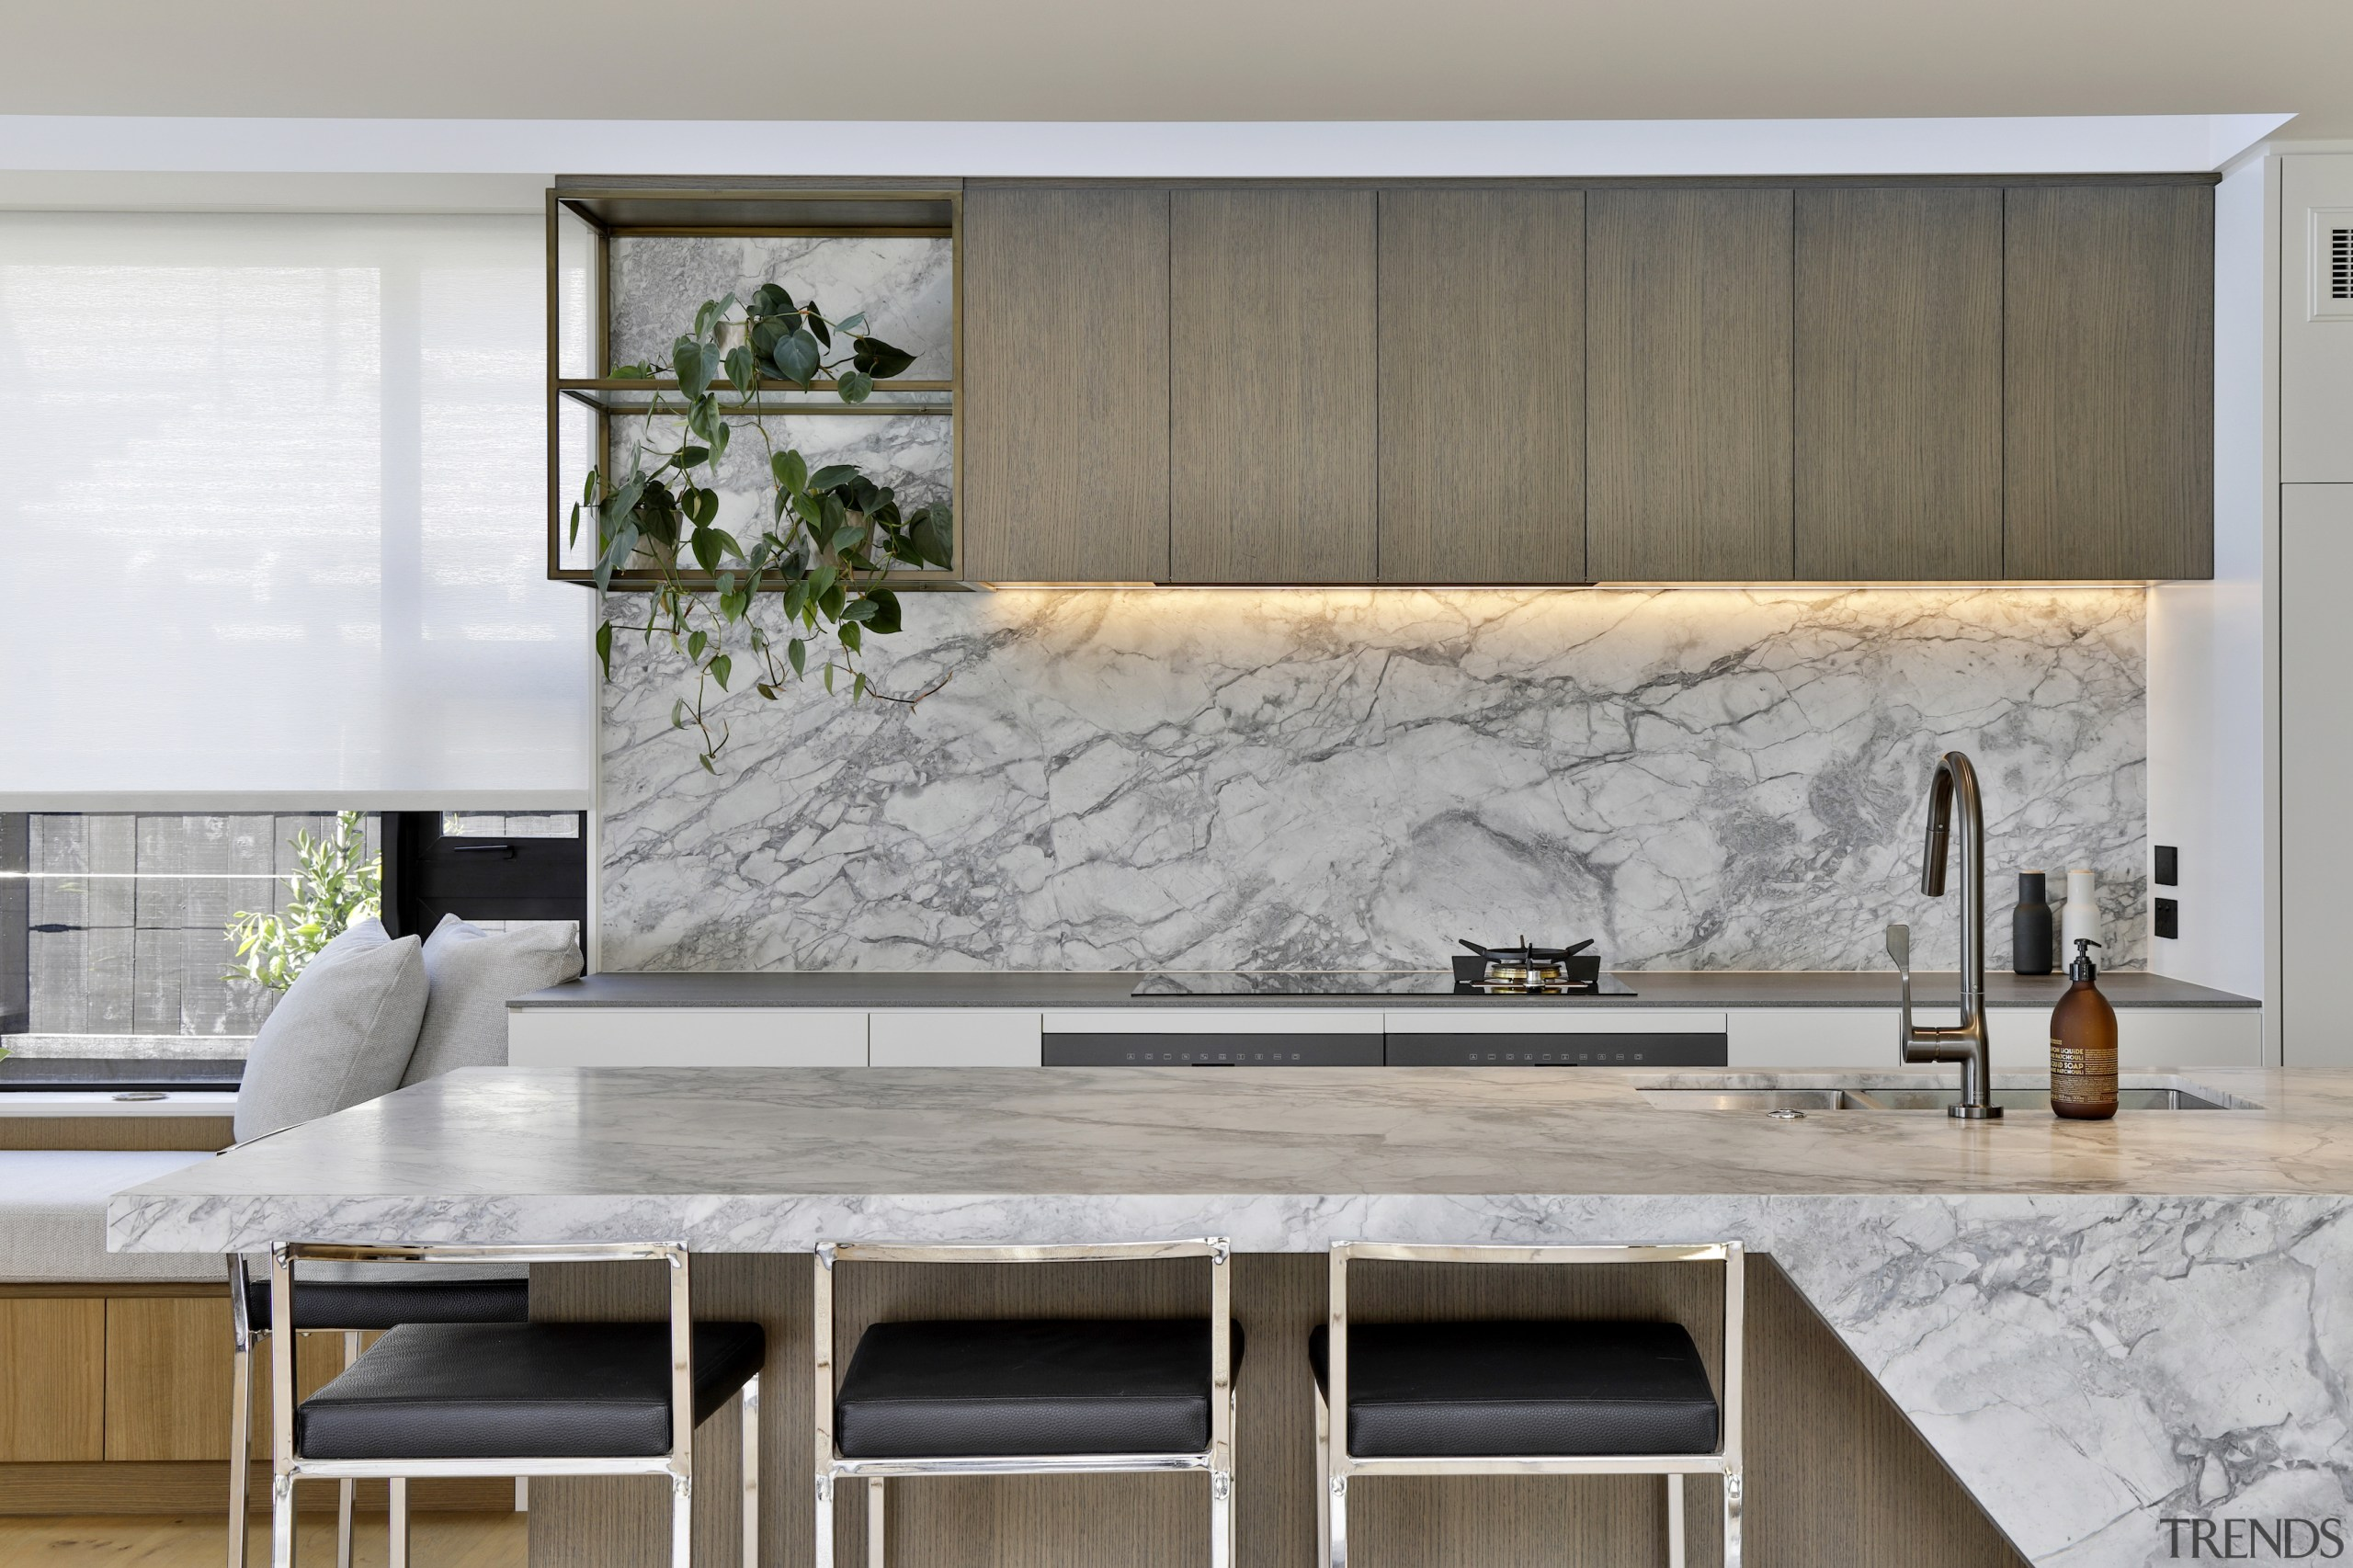 Calm and uncluttered, this kitchen in a home